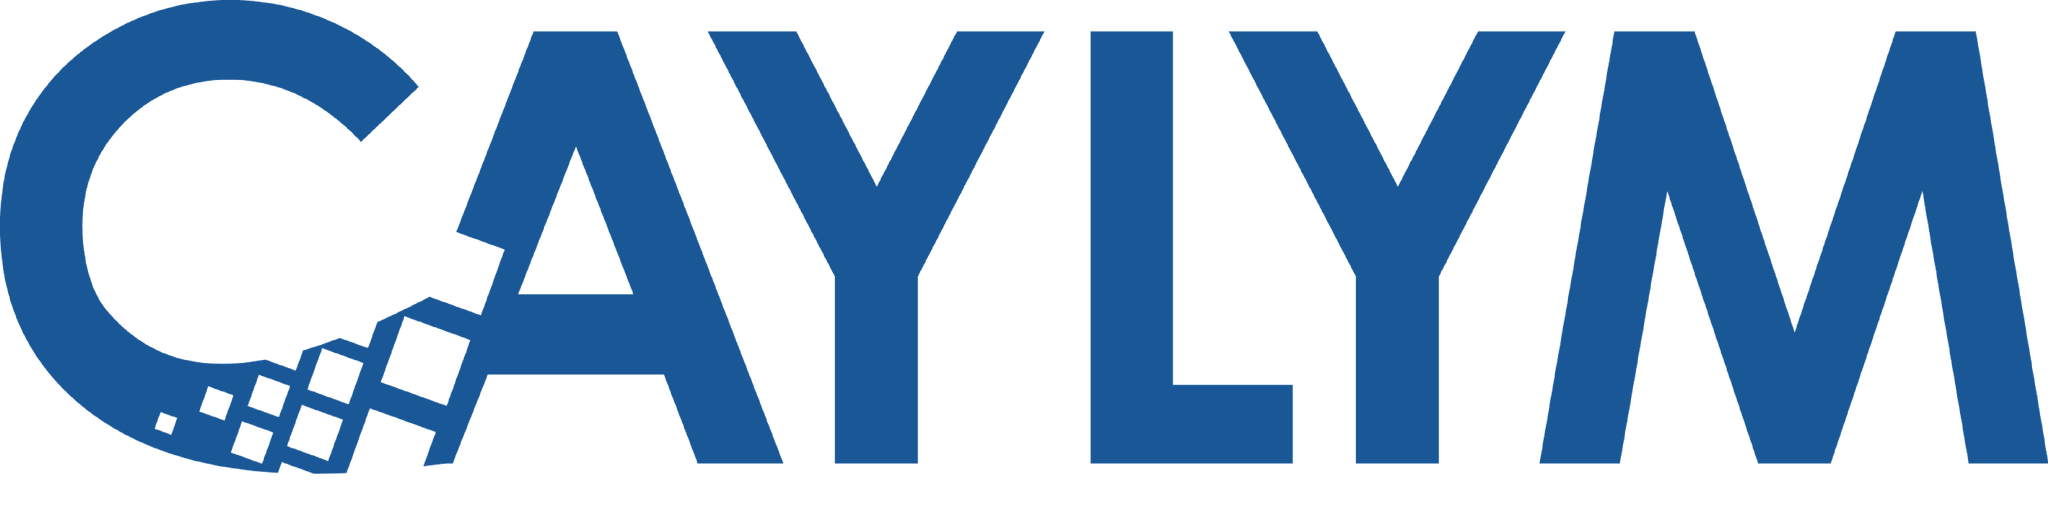 Caylym Technologies International